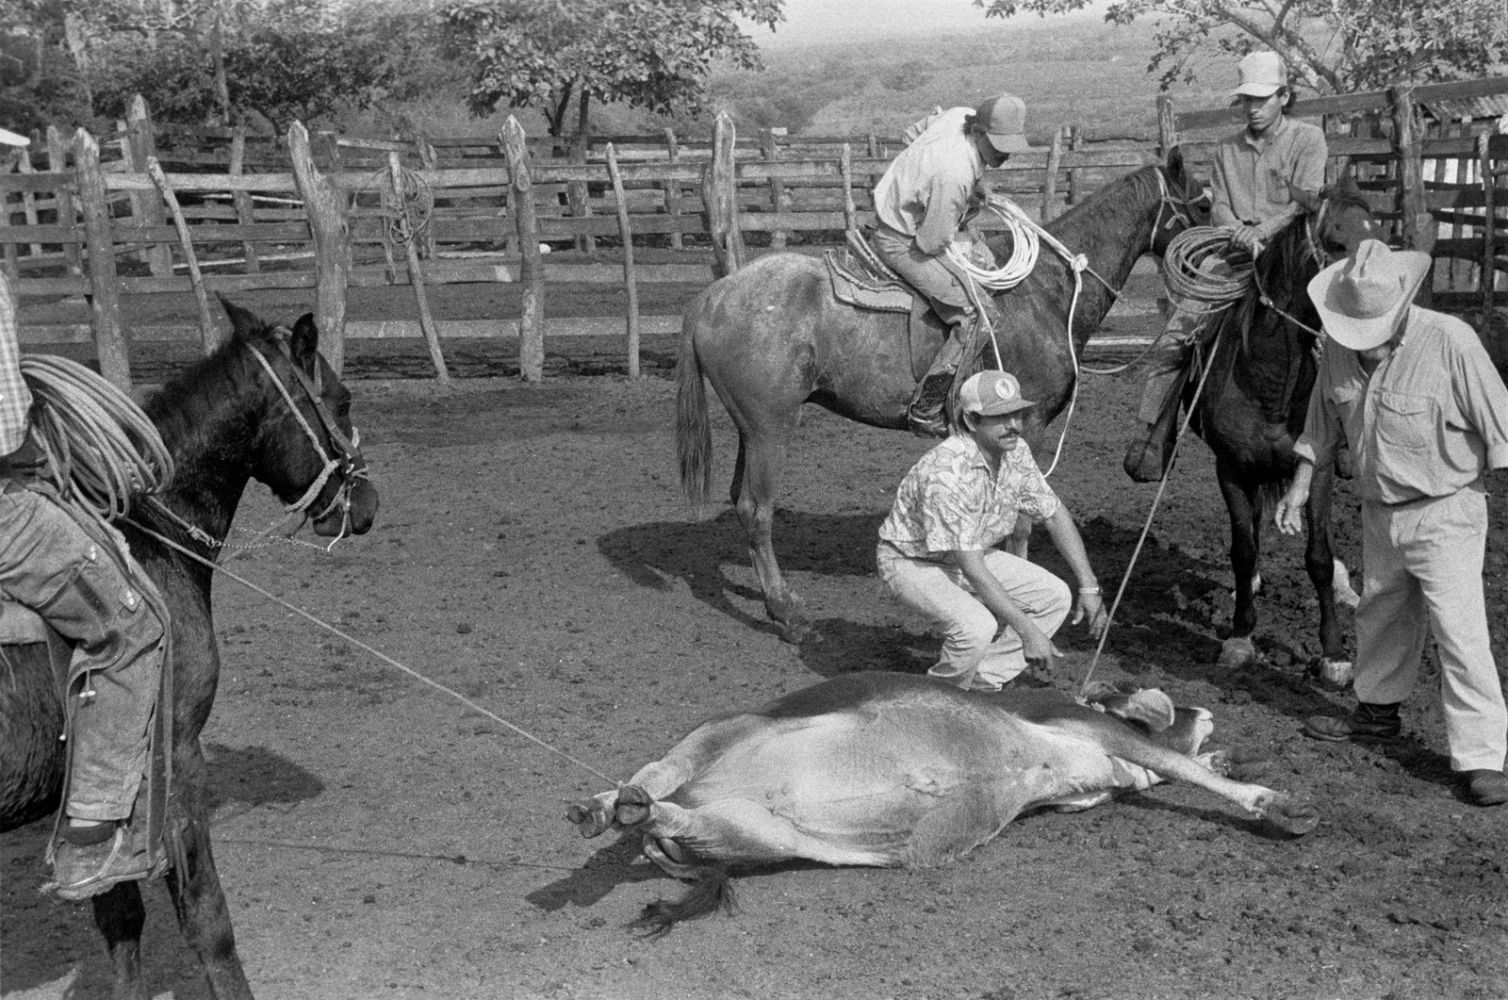 Leo de Swaan,(my other brother in law,) rancher & Huapango singer (on the far right) branding his cows at Rancho Tamyan., Ozuluama, Veracruz1985 ©Sylvia de Swaan